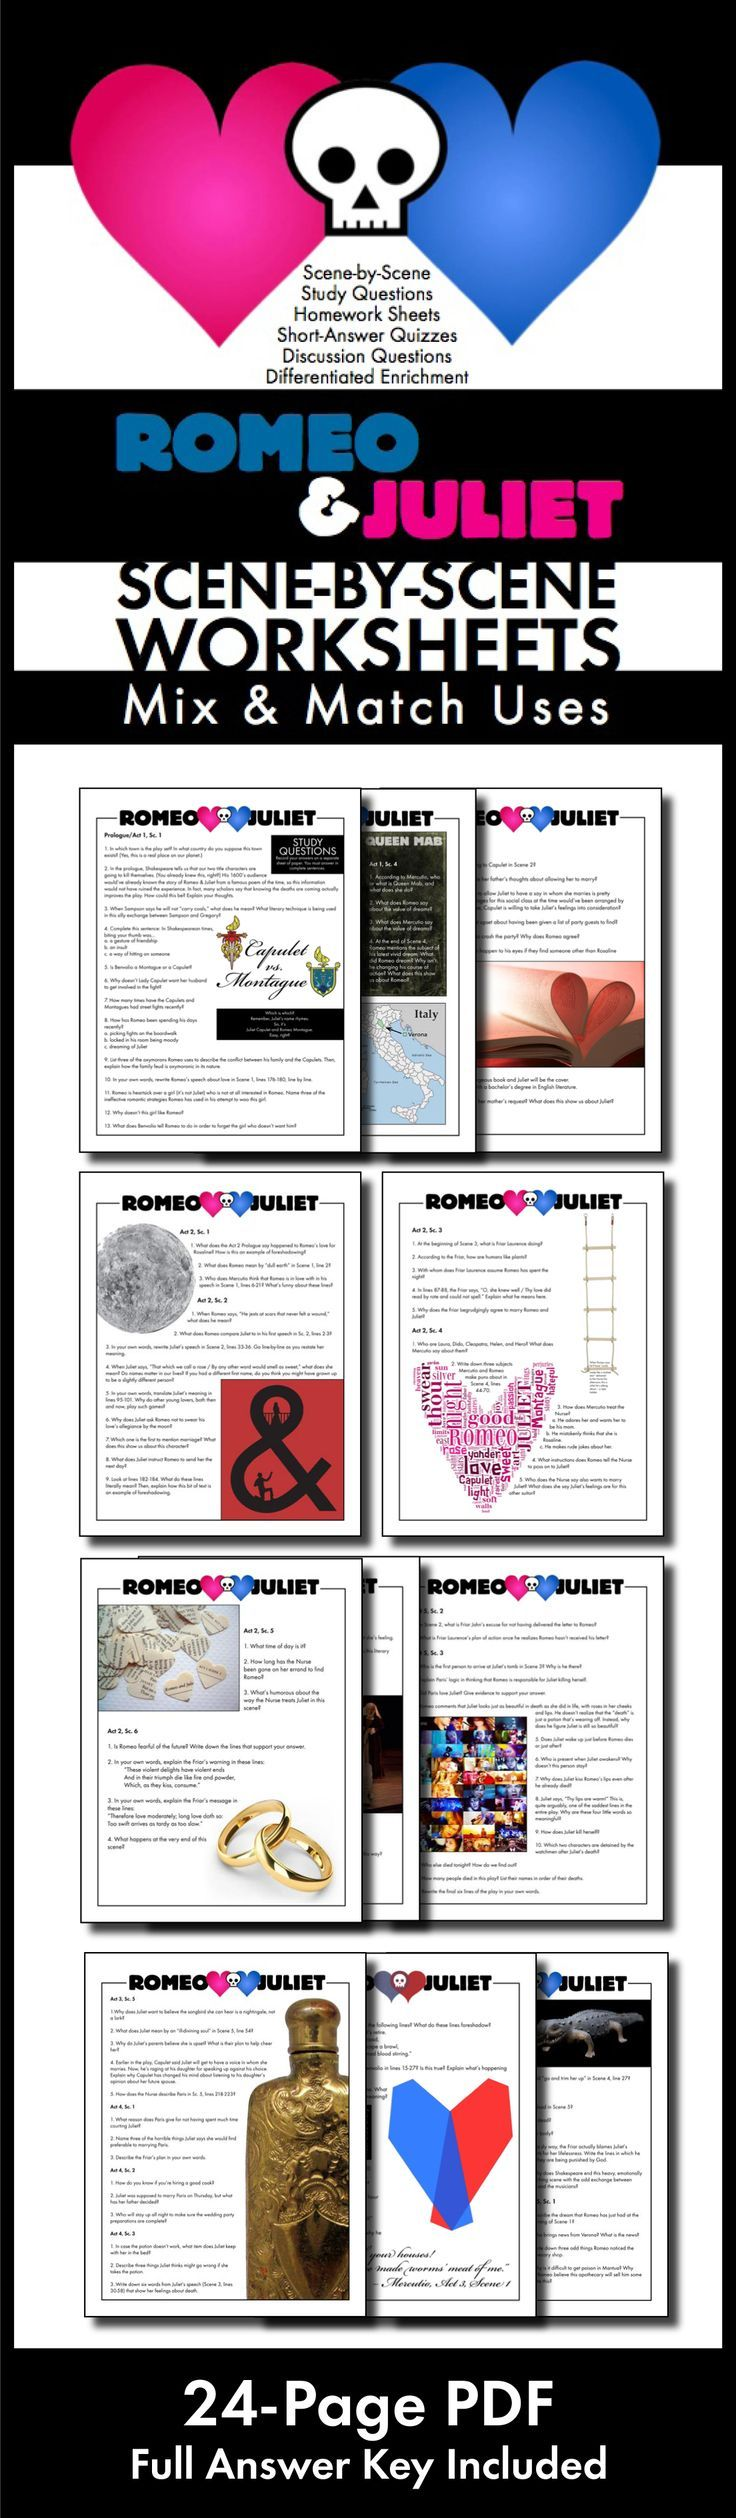 worksheet Romeo And Juliet Timeline Worksheet use this visually stunning package of scene by questions romeo juliet worksheets quizzes homework discussion for shakespeares play